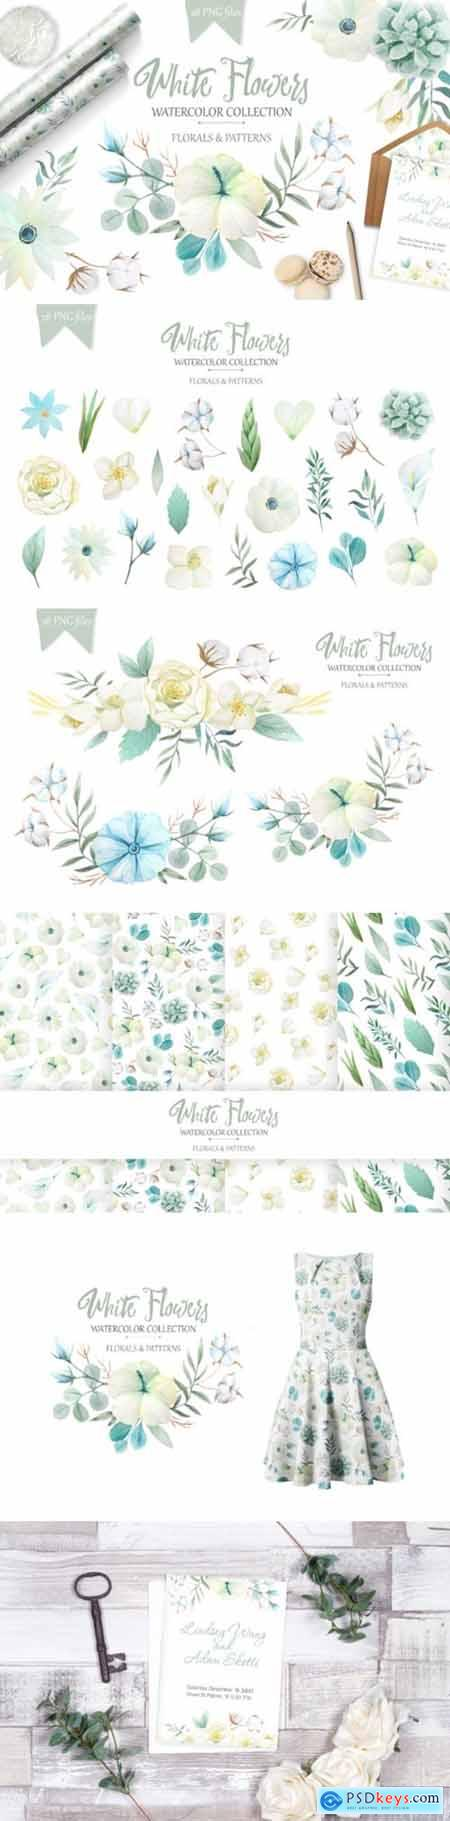 Watercolor White Flowers Set 3552086